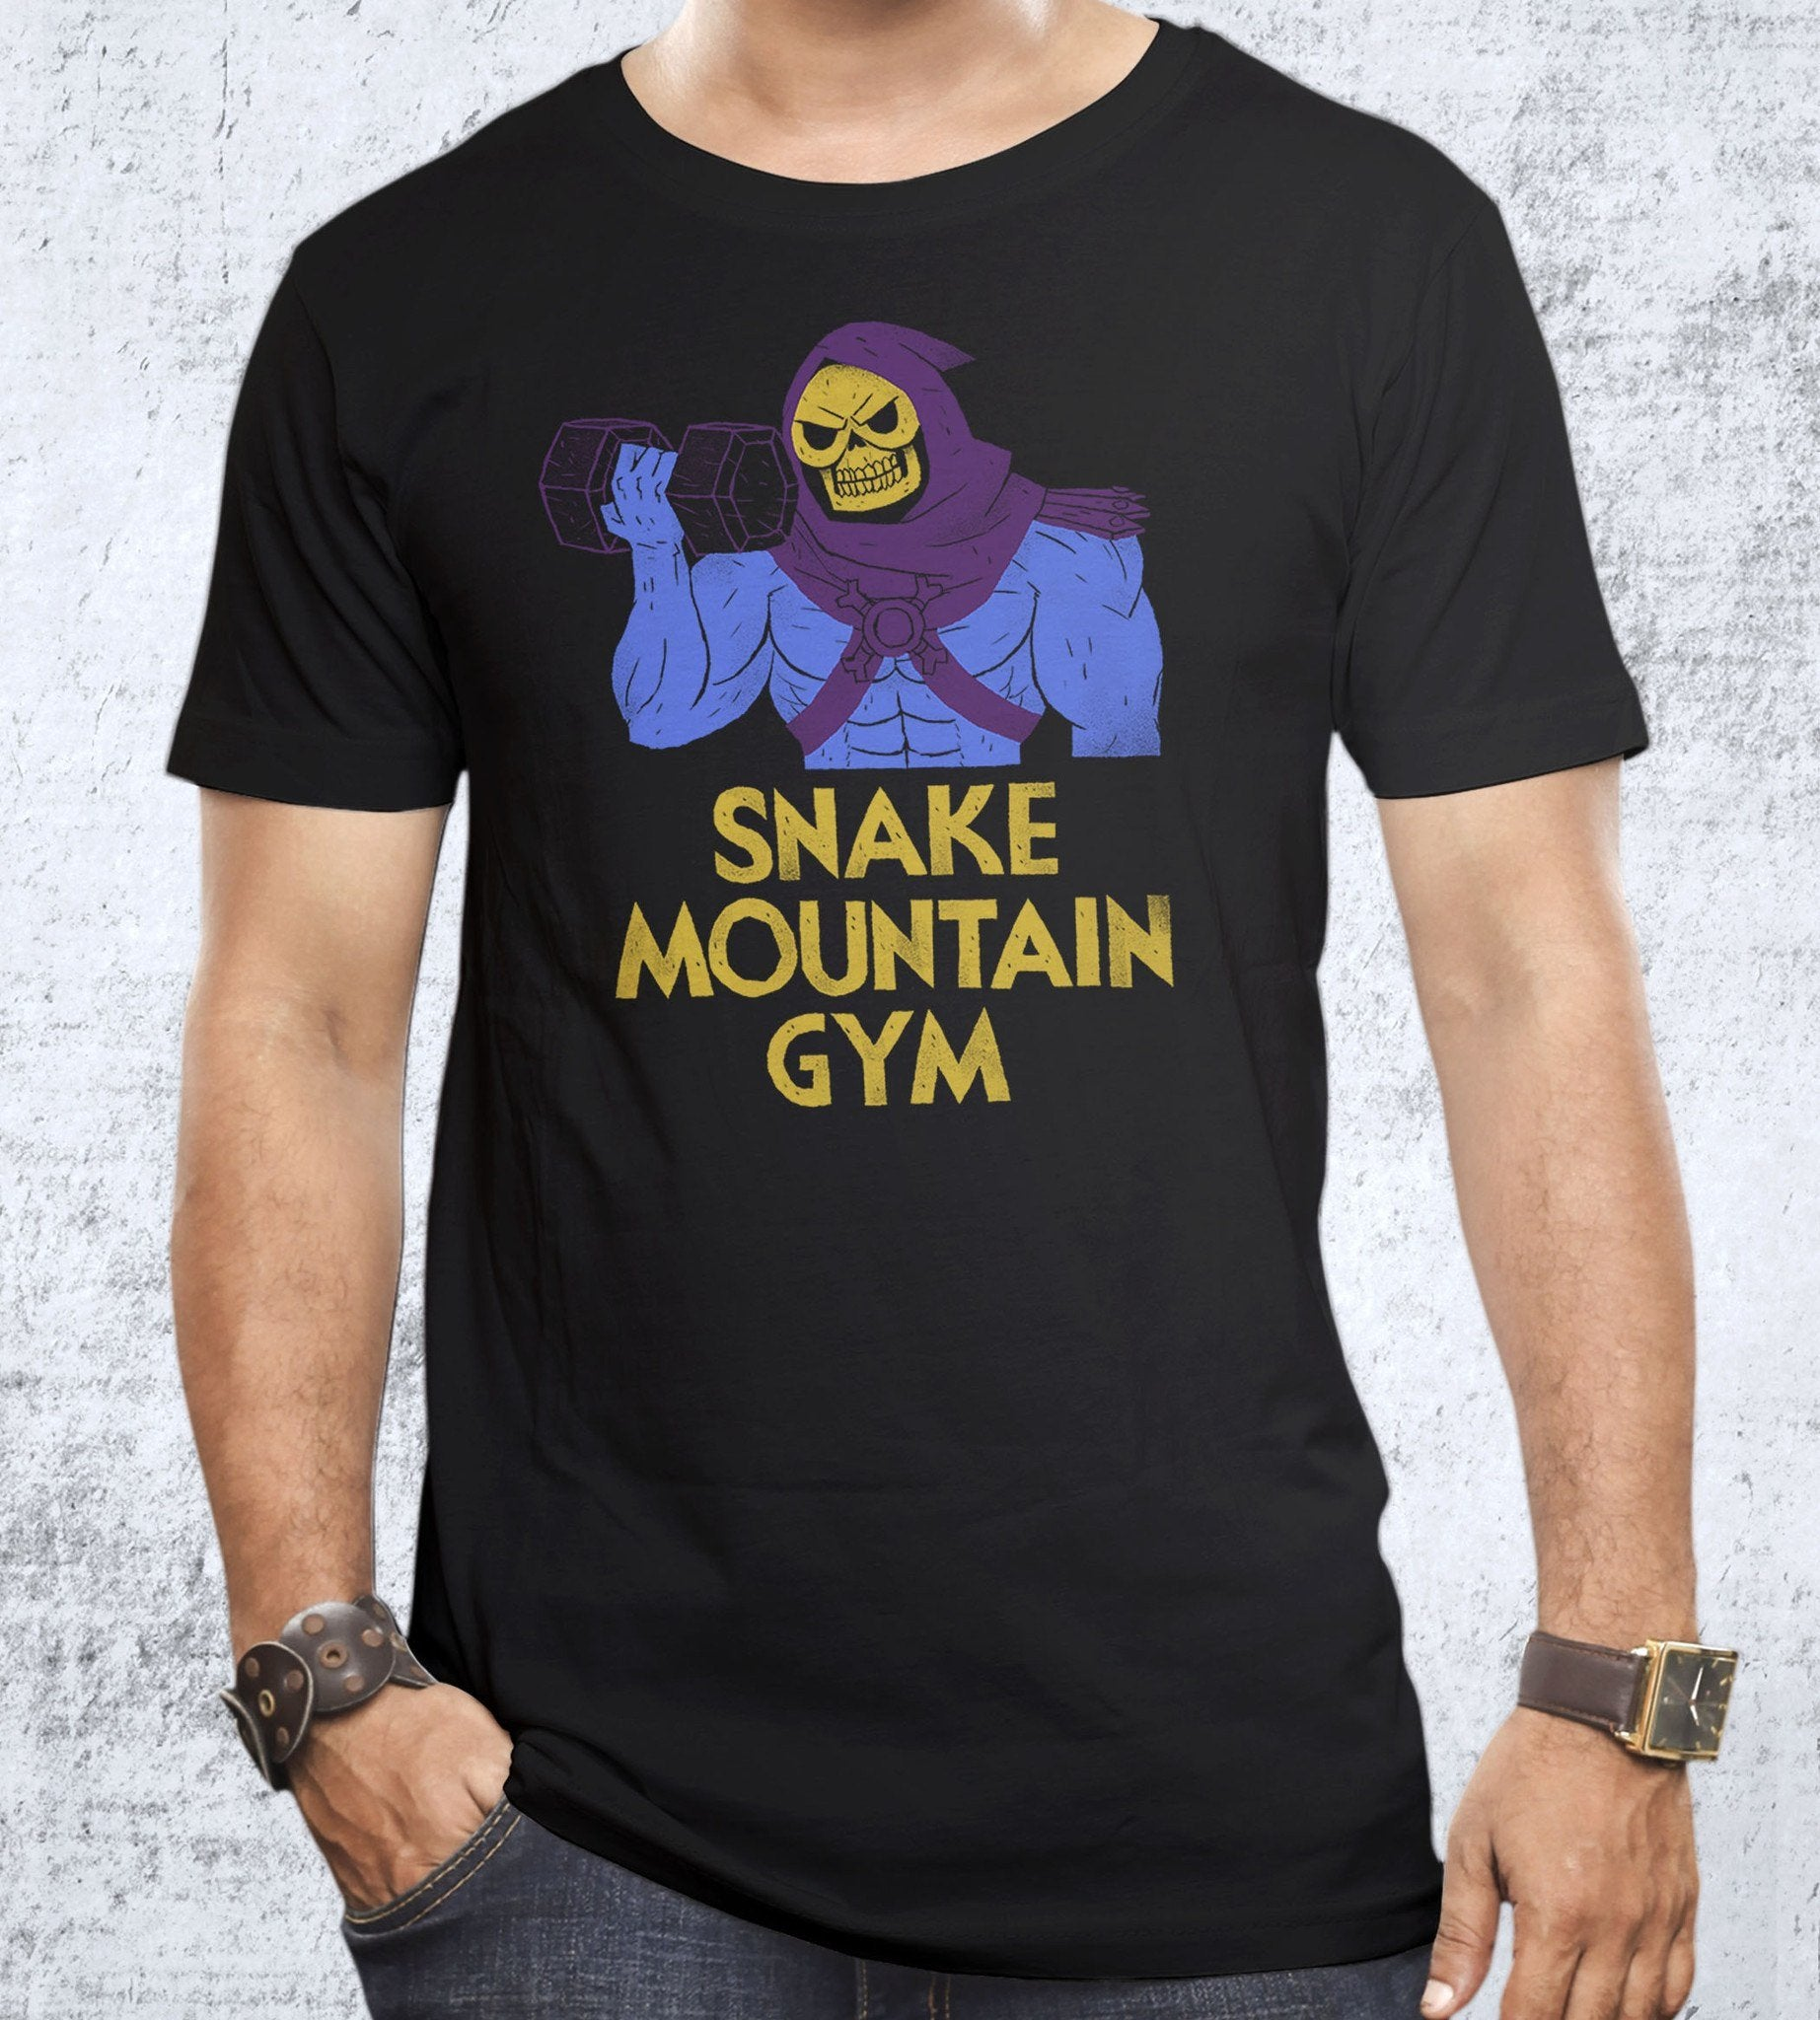 Snake Mountain Gym T-Shirts by Louis Roskosch - Pixel Empire